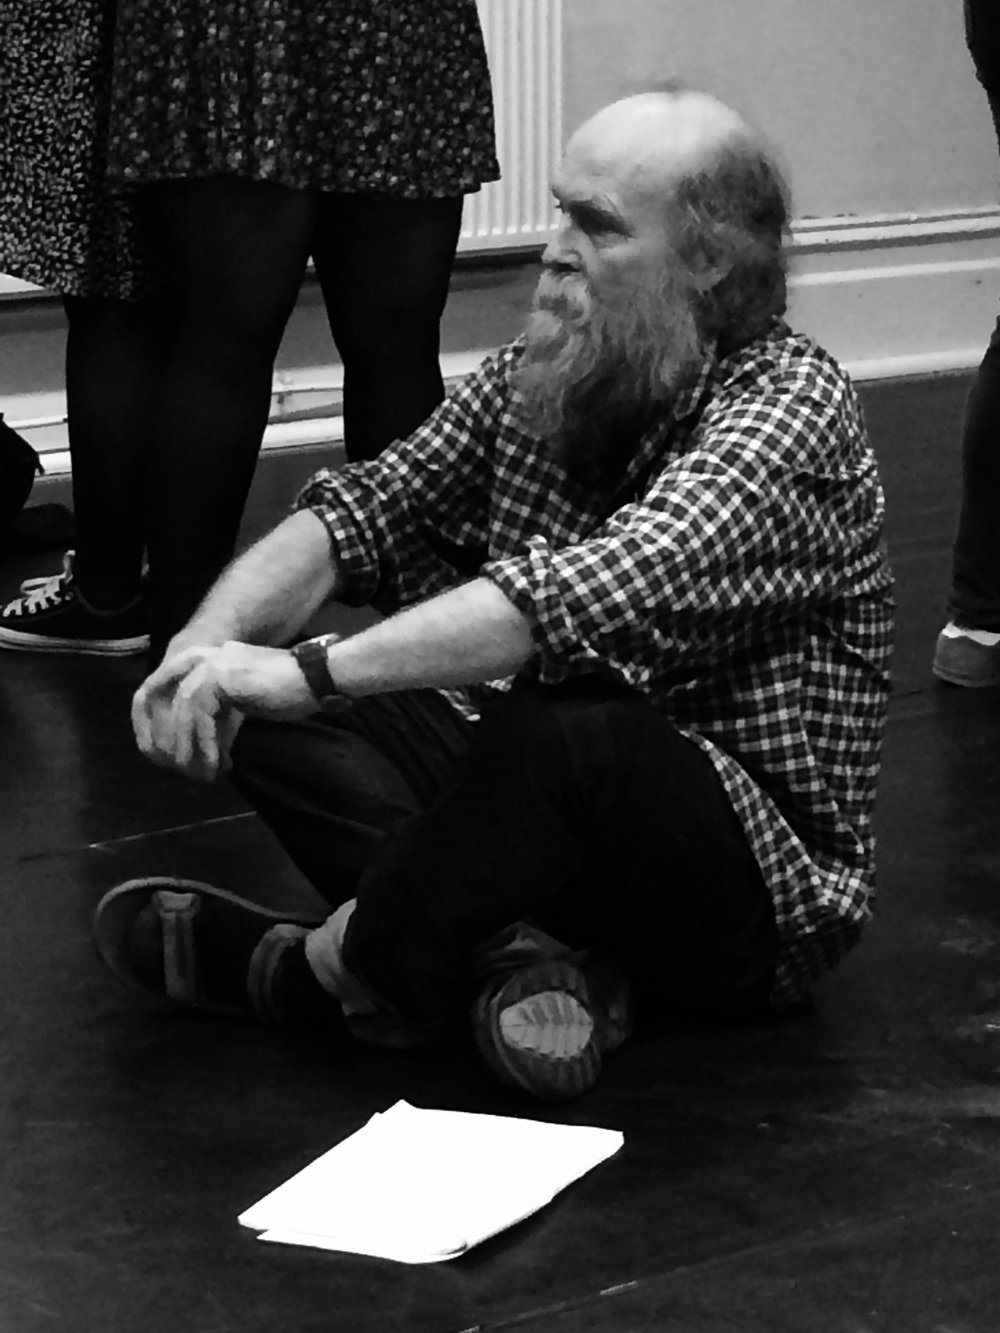 Actor Laurie plays George Brown, a new character for this year's version of the show. All the patients in the play are based on real people...we are not in the realm of fantasy.